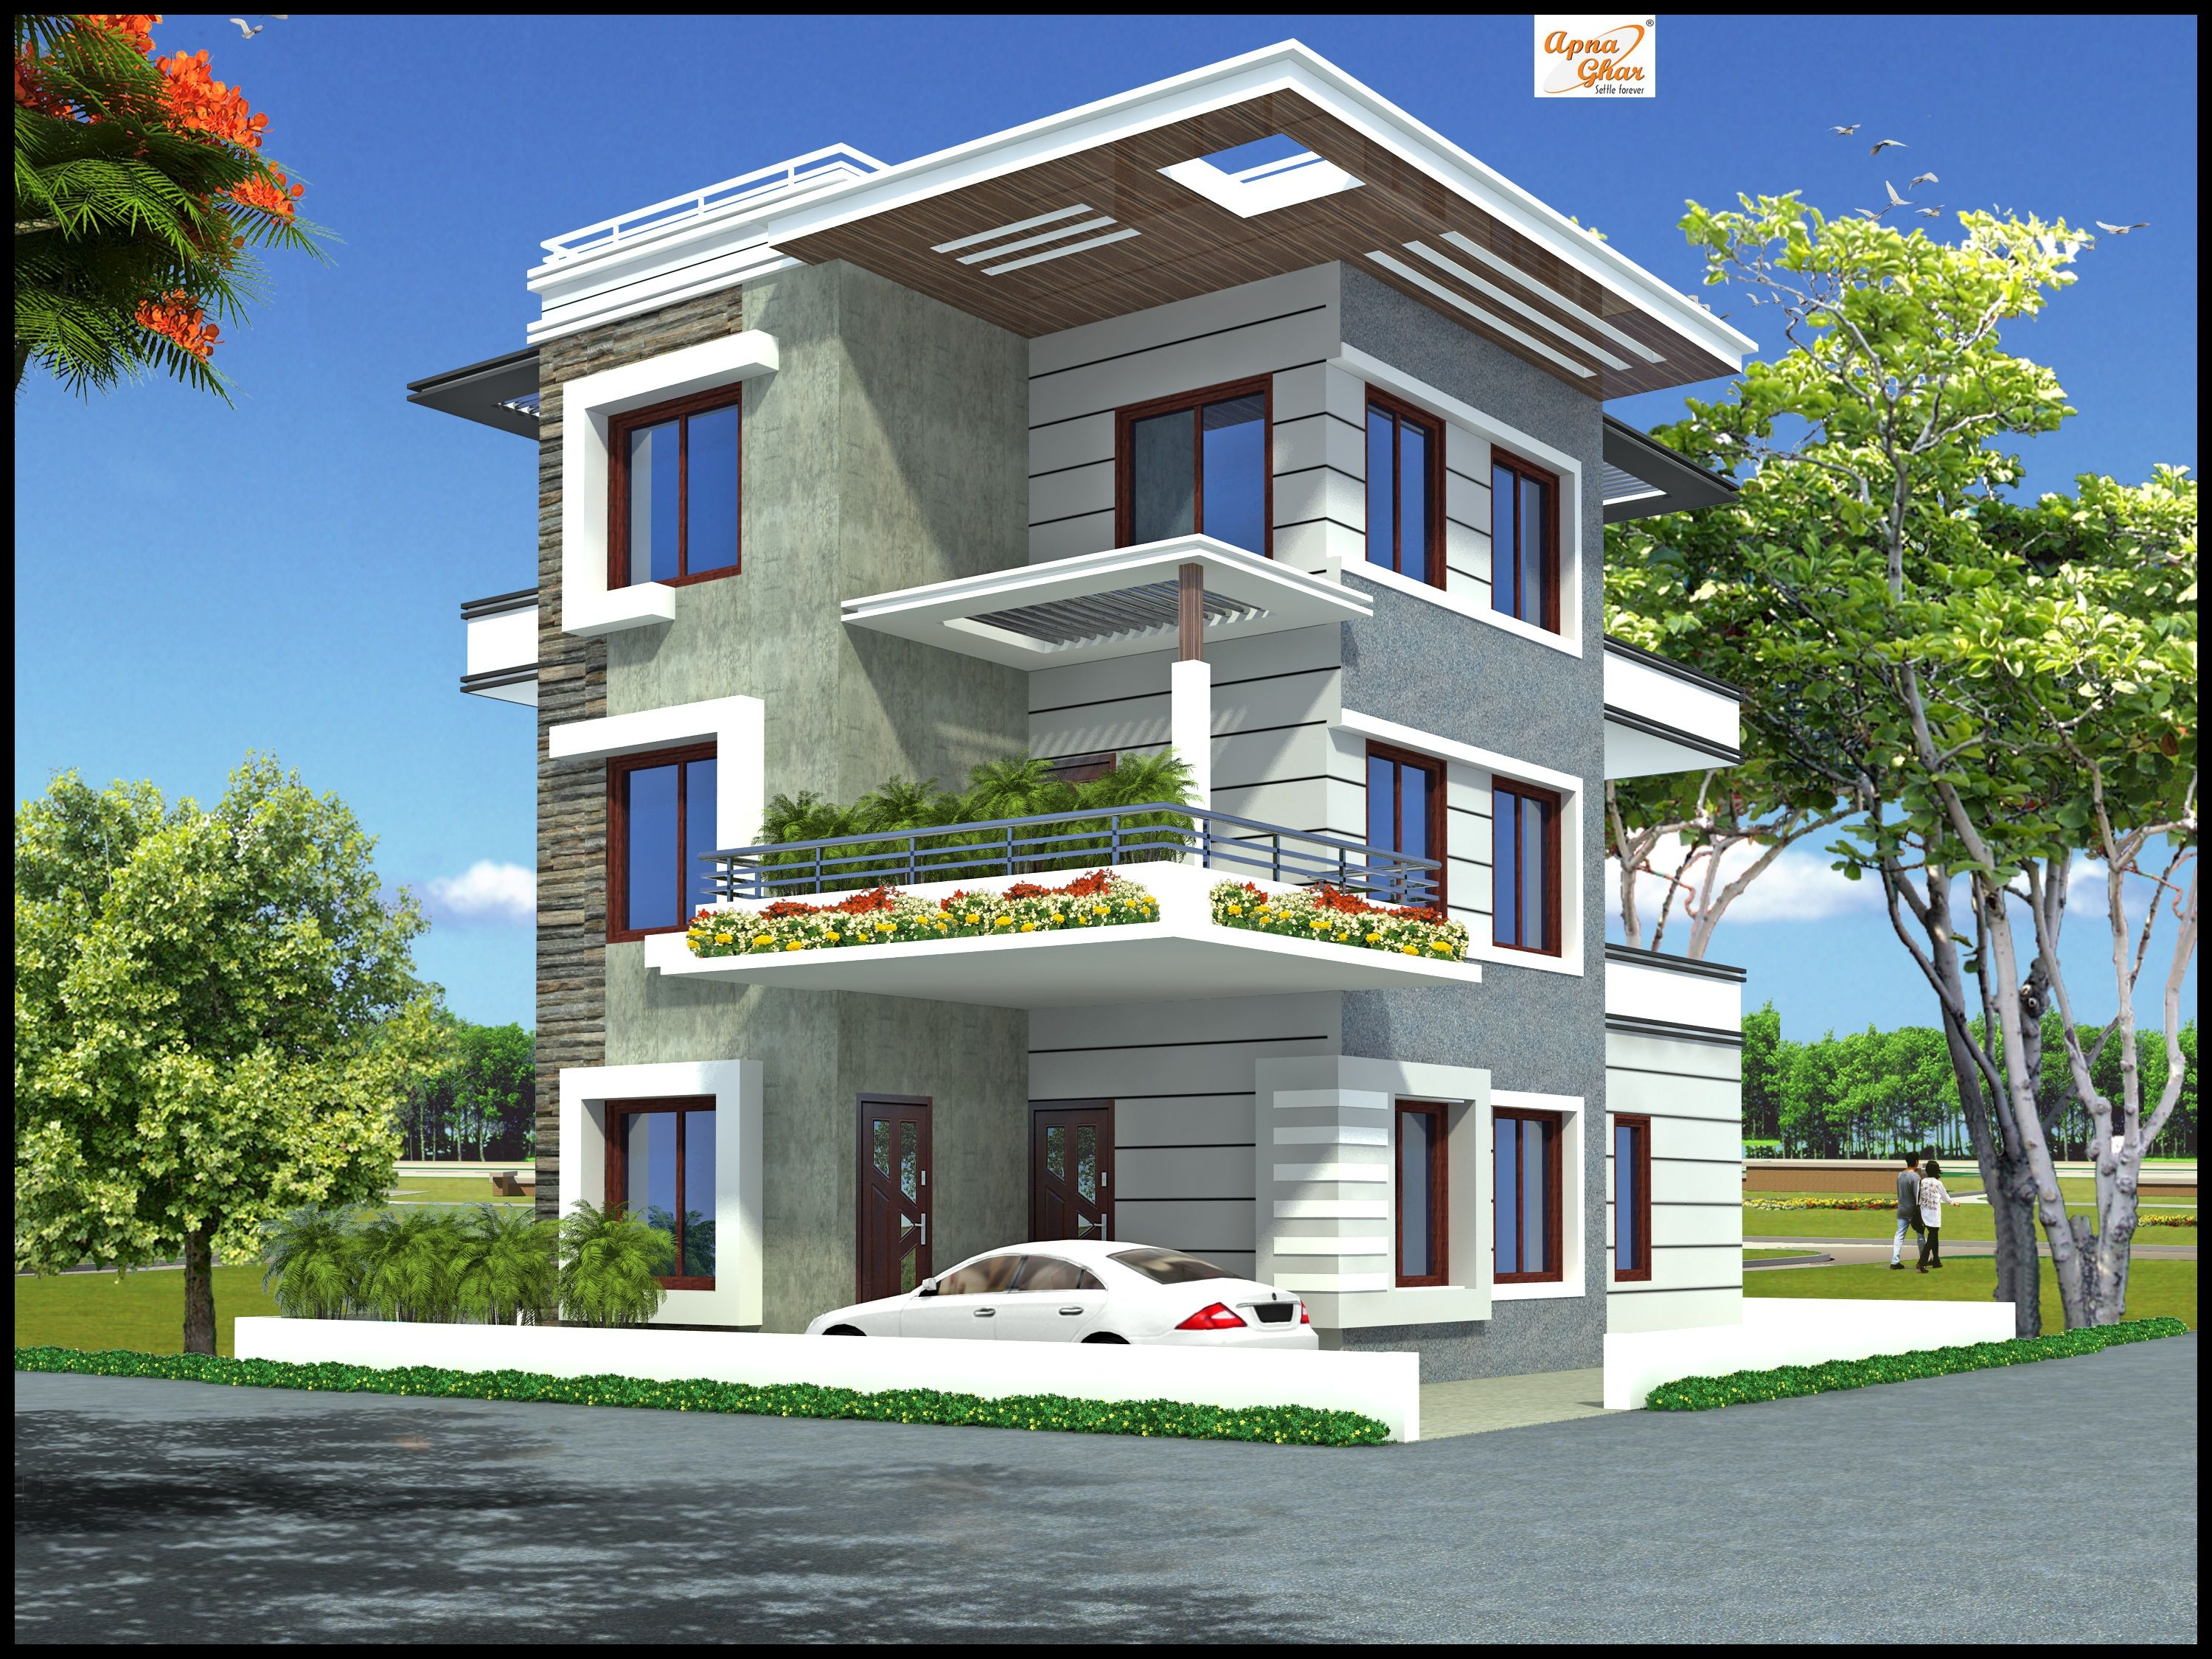 5 bedroom modern 3 floor house design area 192 sq mts for 3 floor house design